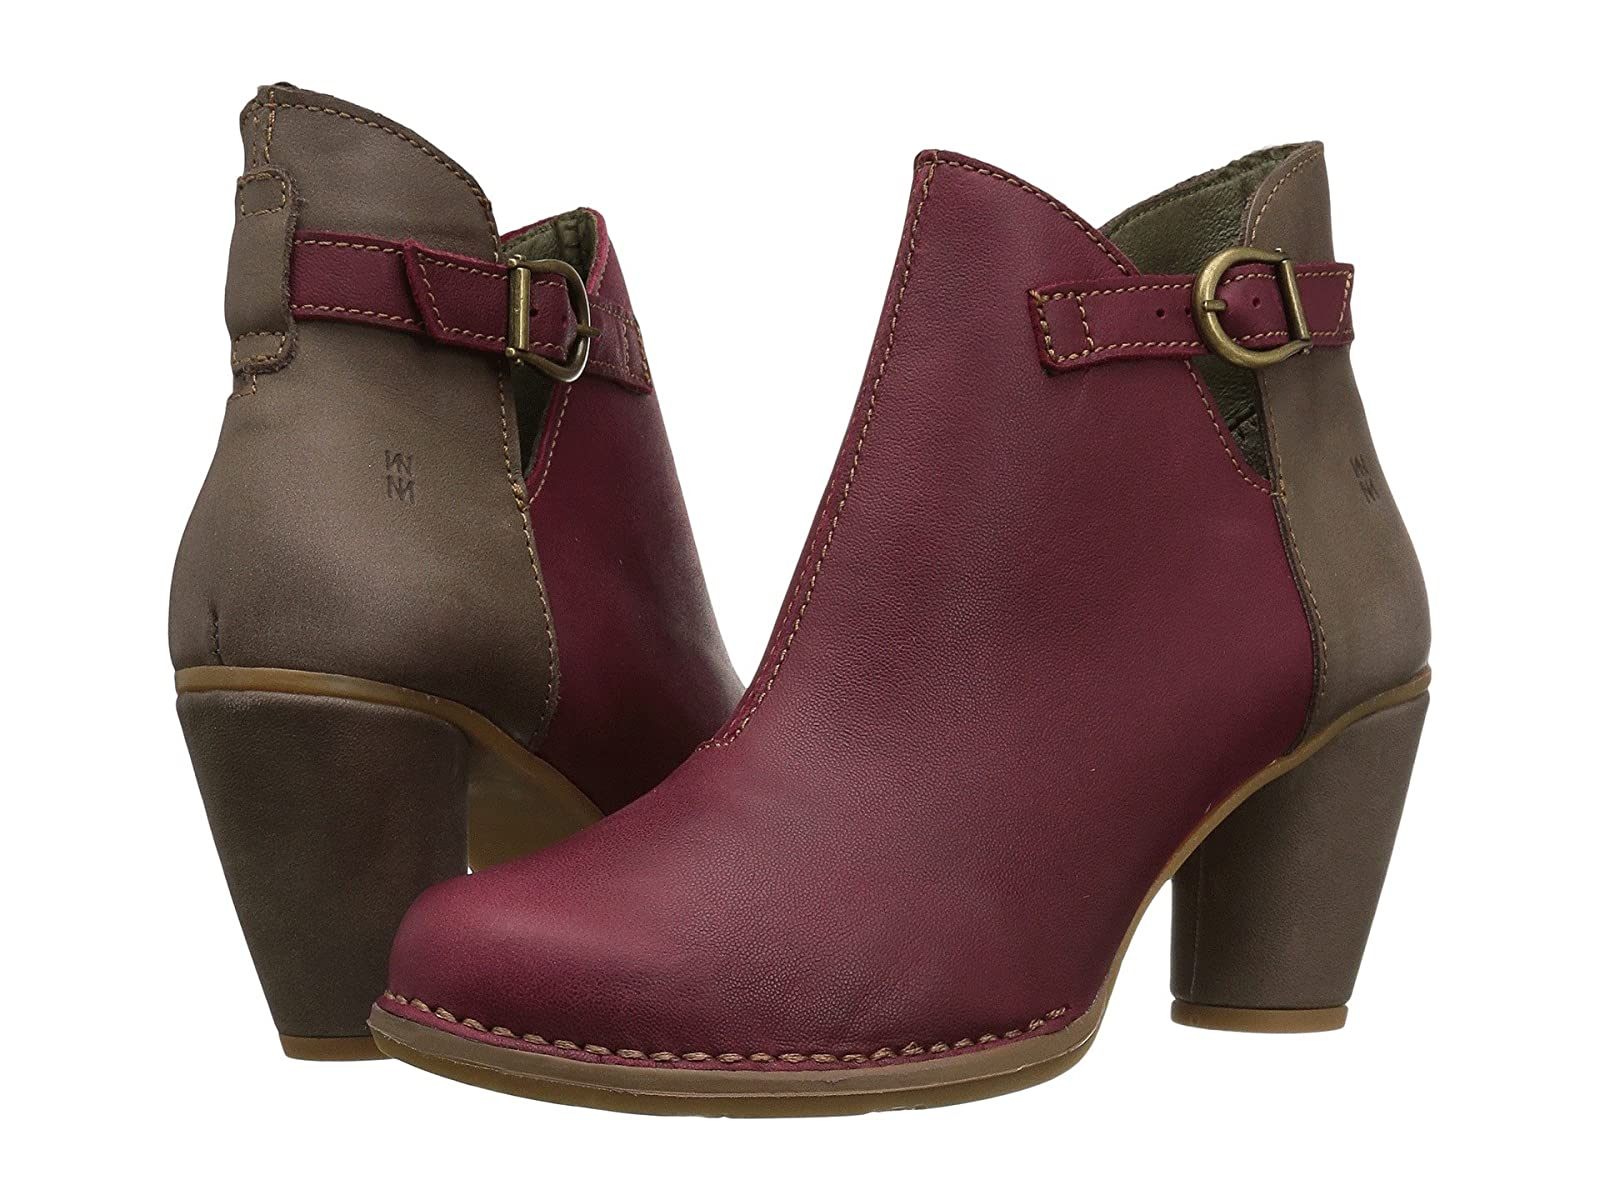 El Naturalista Colibri N472Cheap and distinctive eye-catching shoes